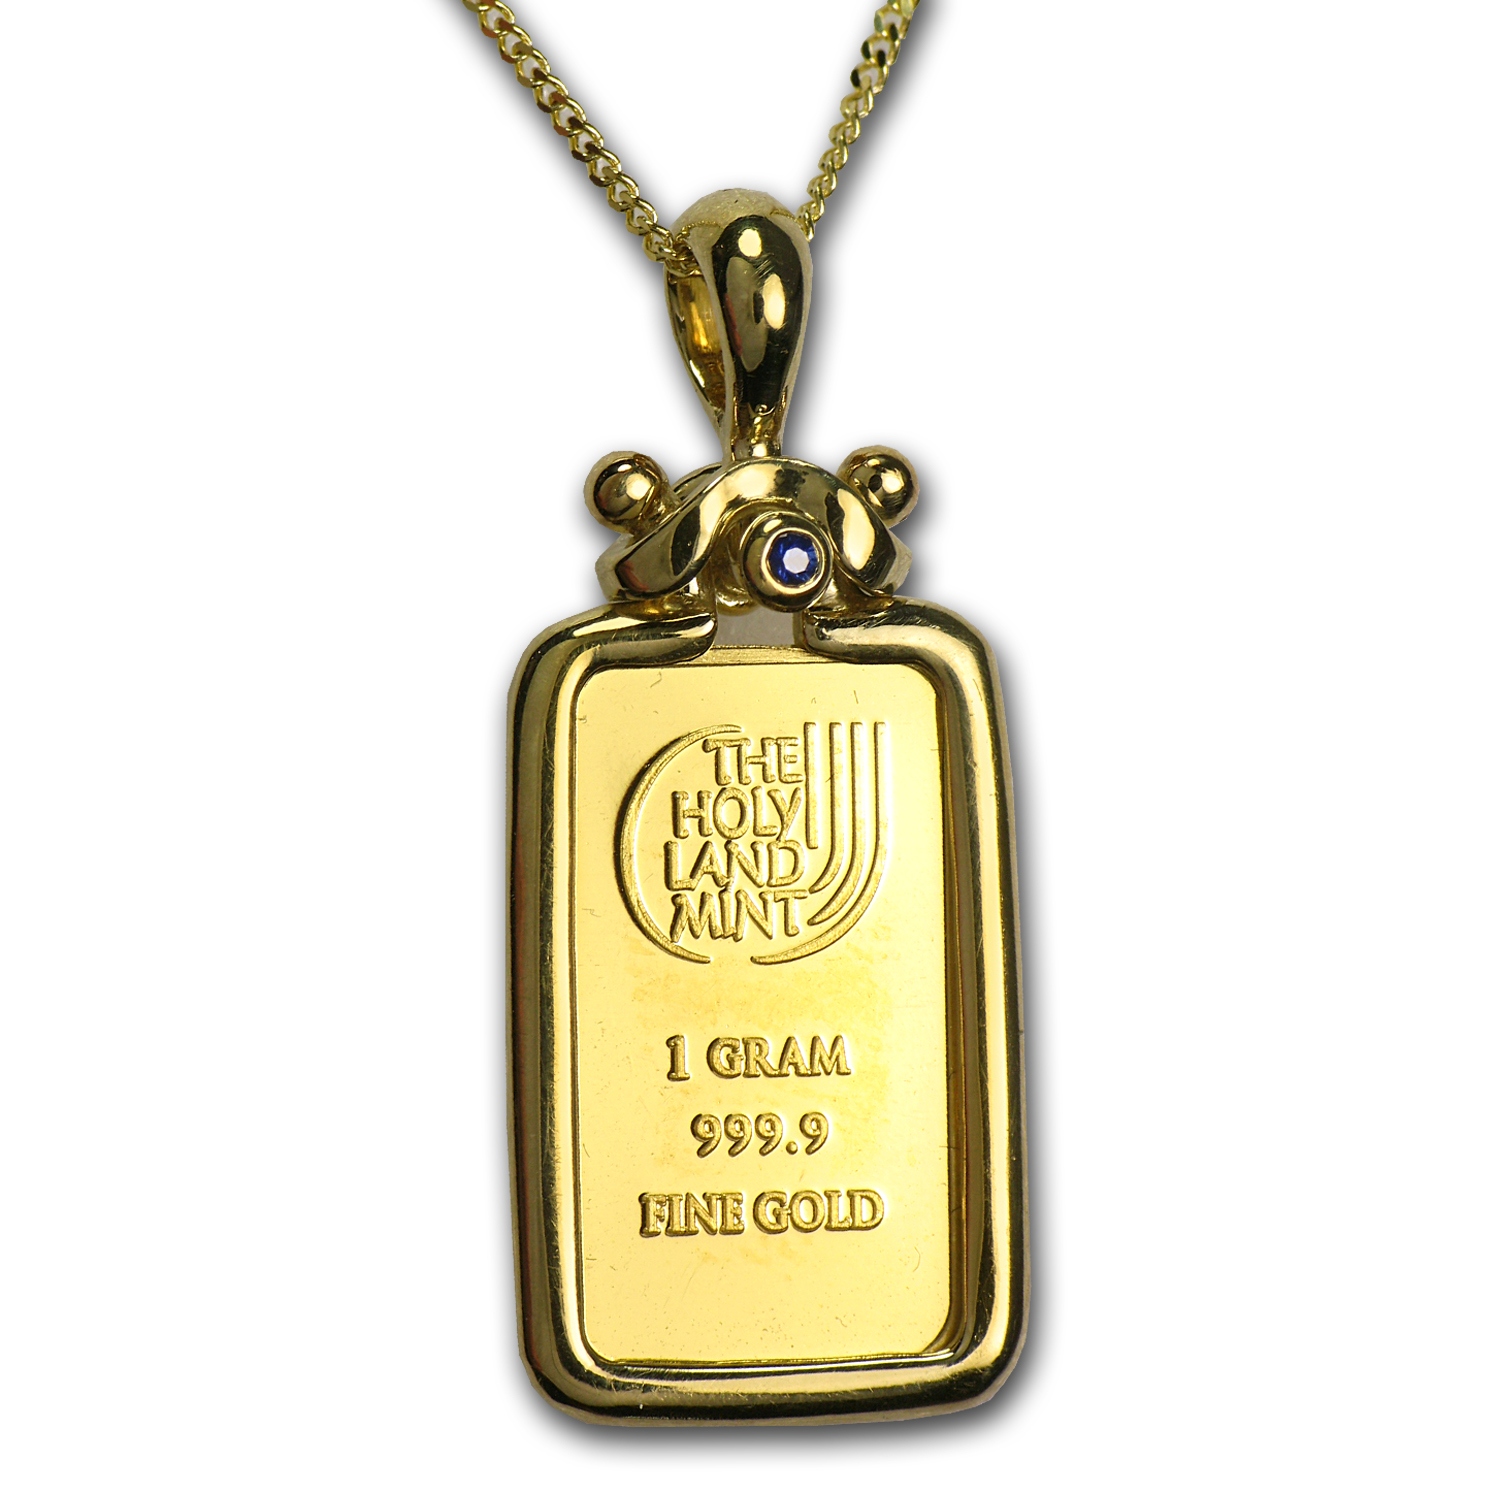 1 Gram Gold Bar Dove of Peace Necklace (AGW .0939 oz)